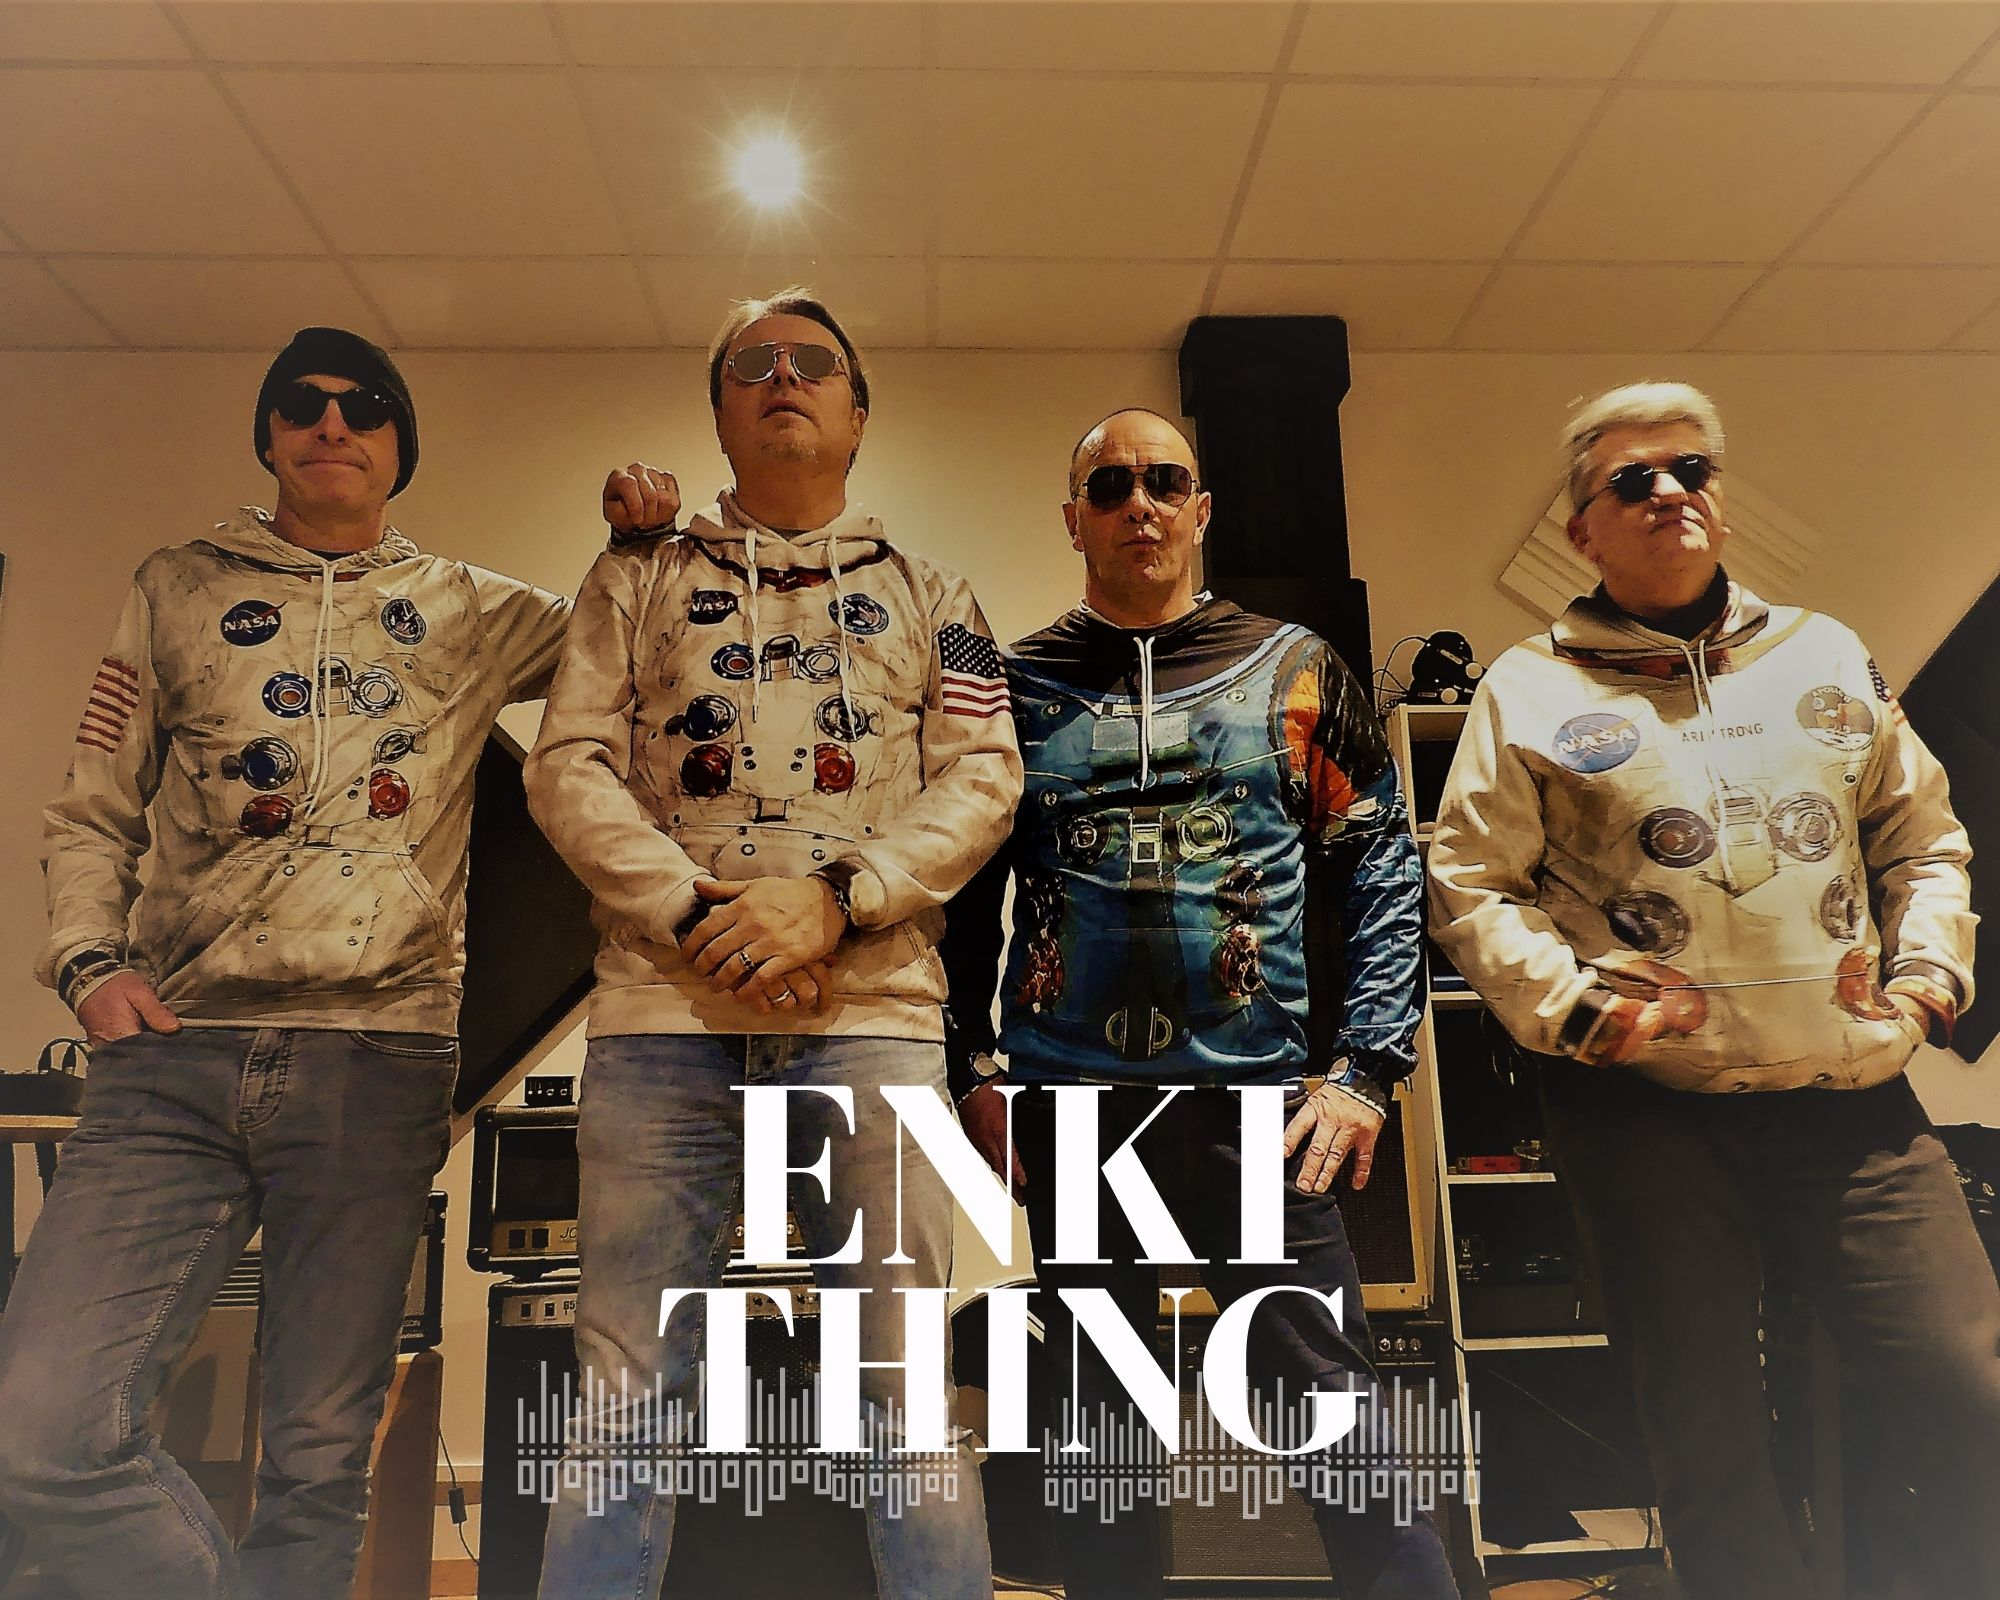 Crafting Divinity with Soulful and Stunning Progressive Rock Compositions: Presenting to the World Enki Thing